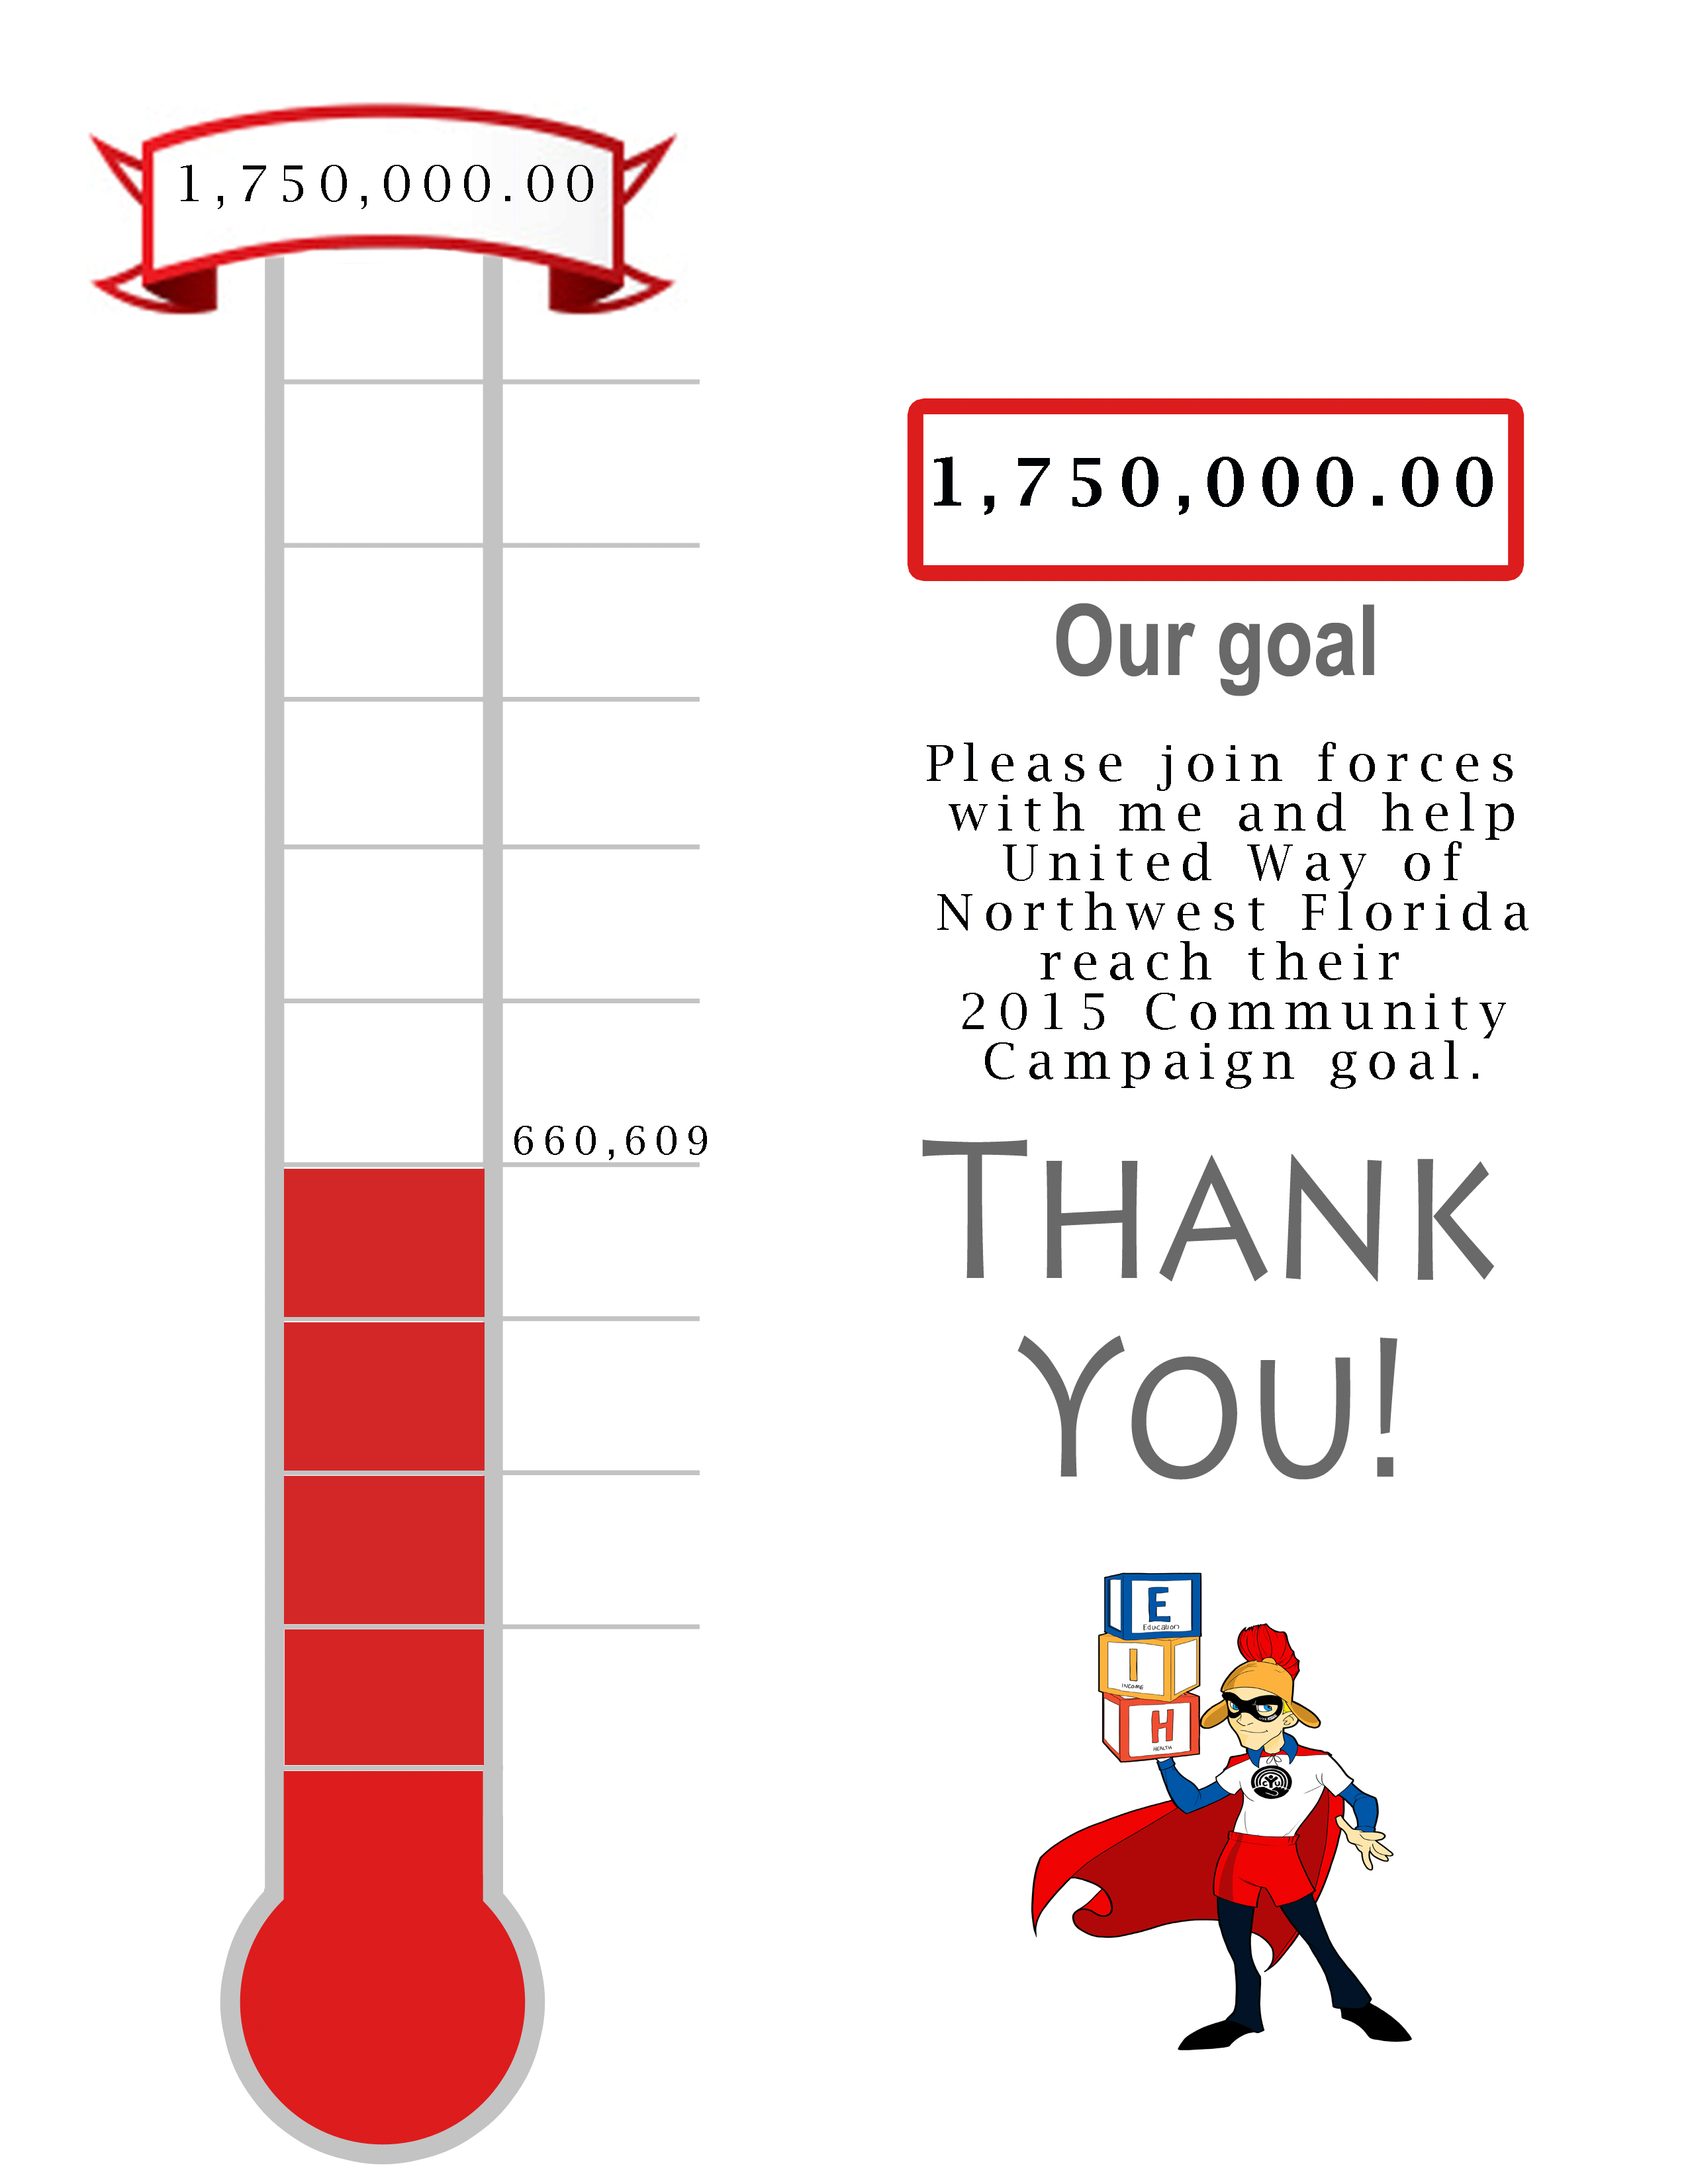 2015 Campaign Goal 1,750,000.00